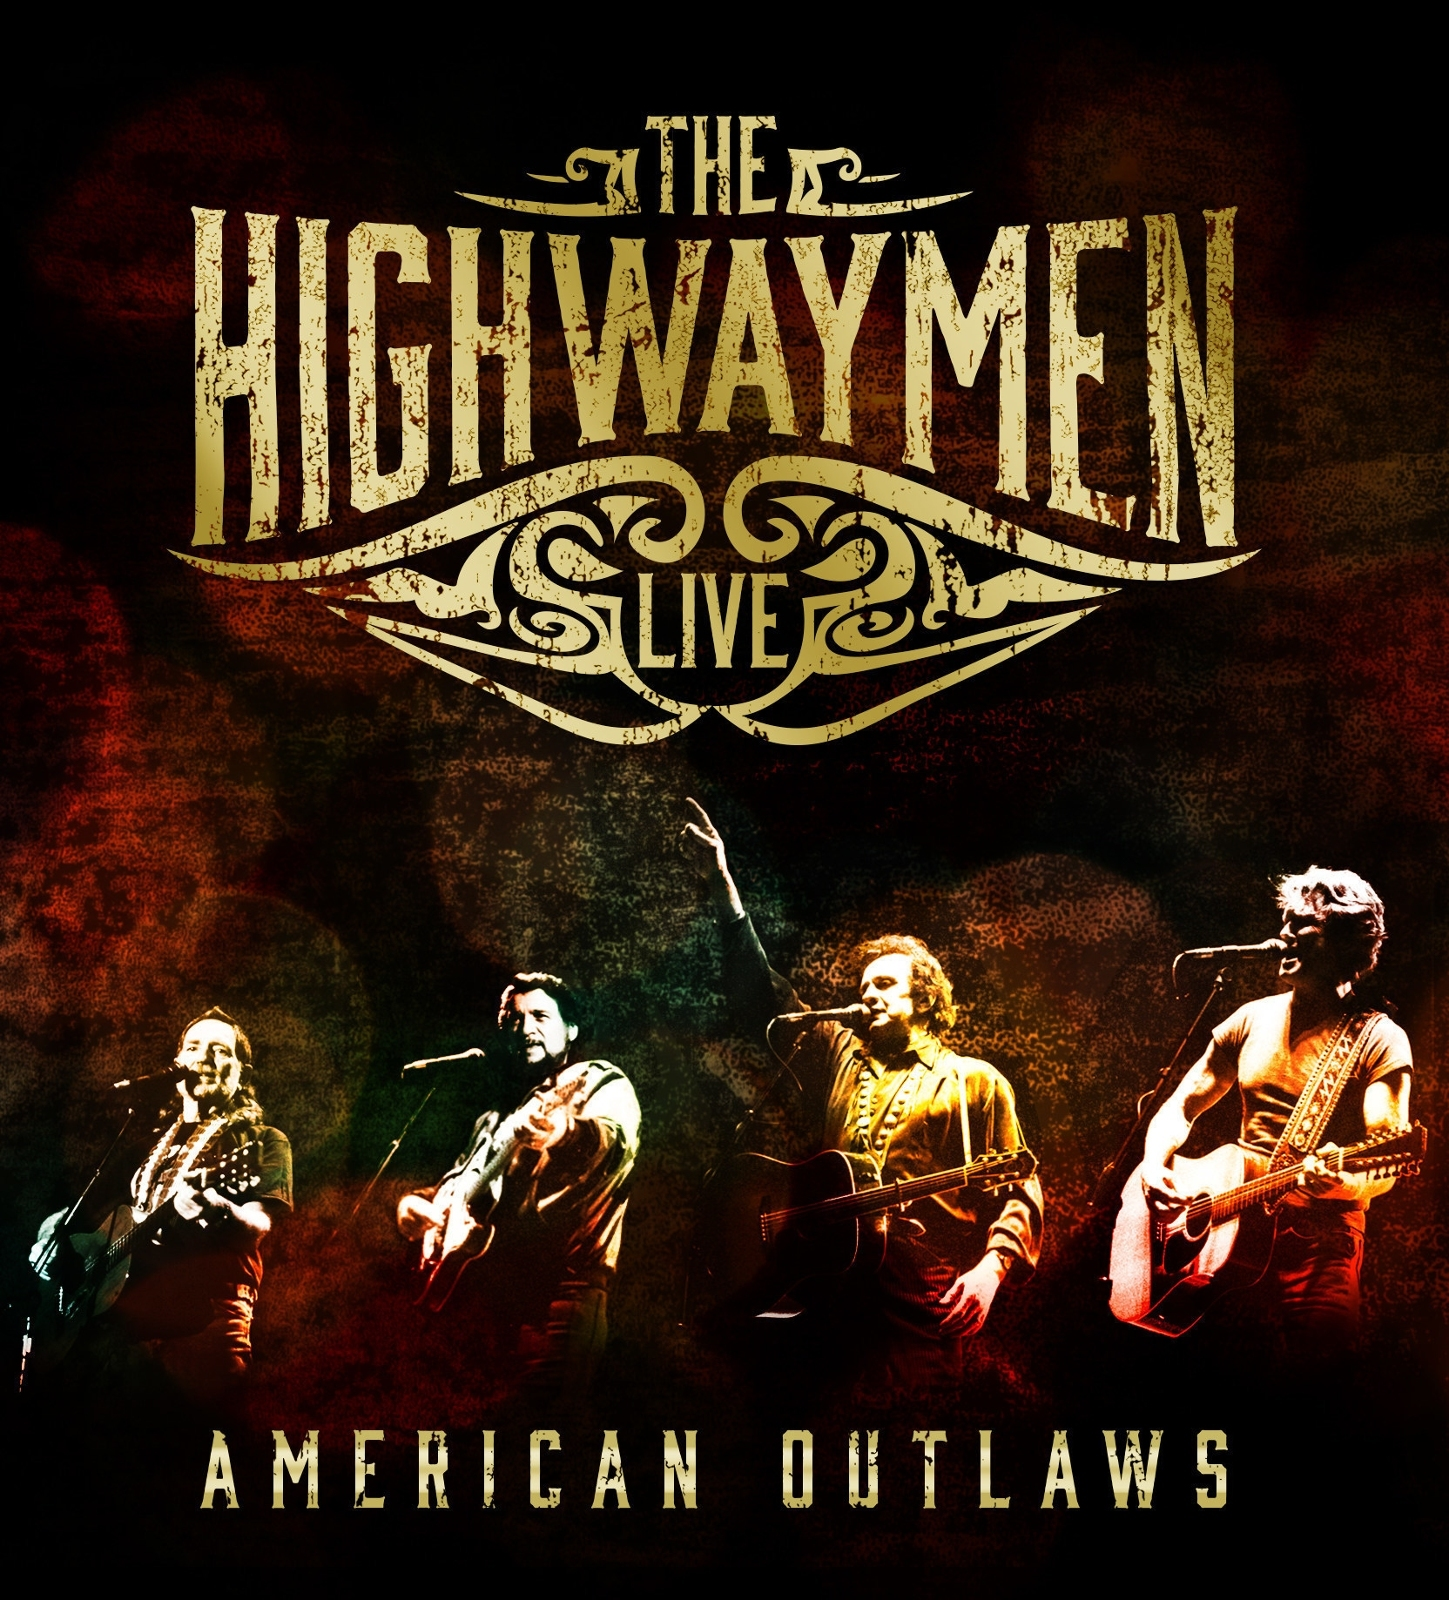 Live: American Outlaws (3CD/BluRay) on CD by The Highwaymen (Country) image